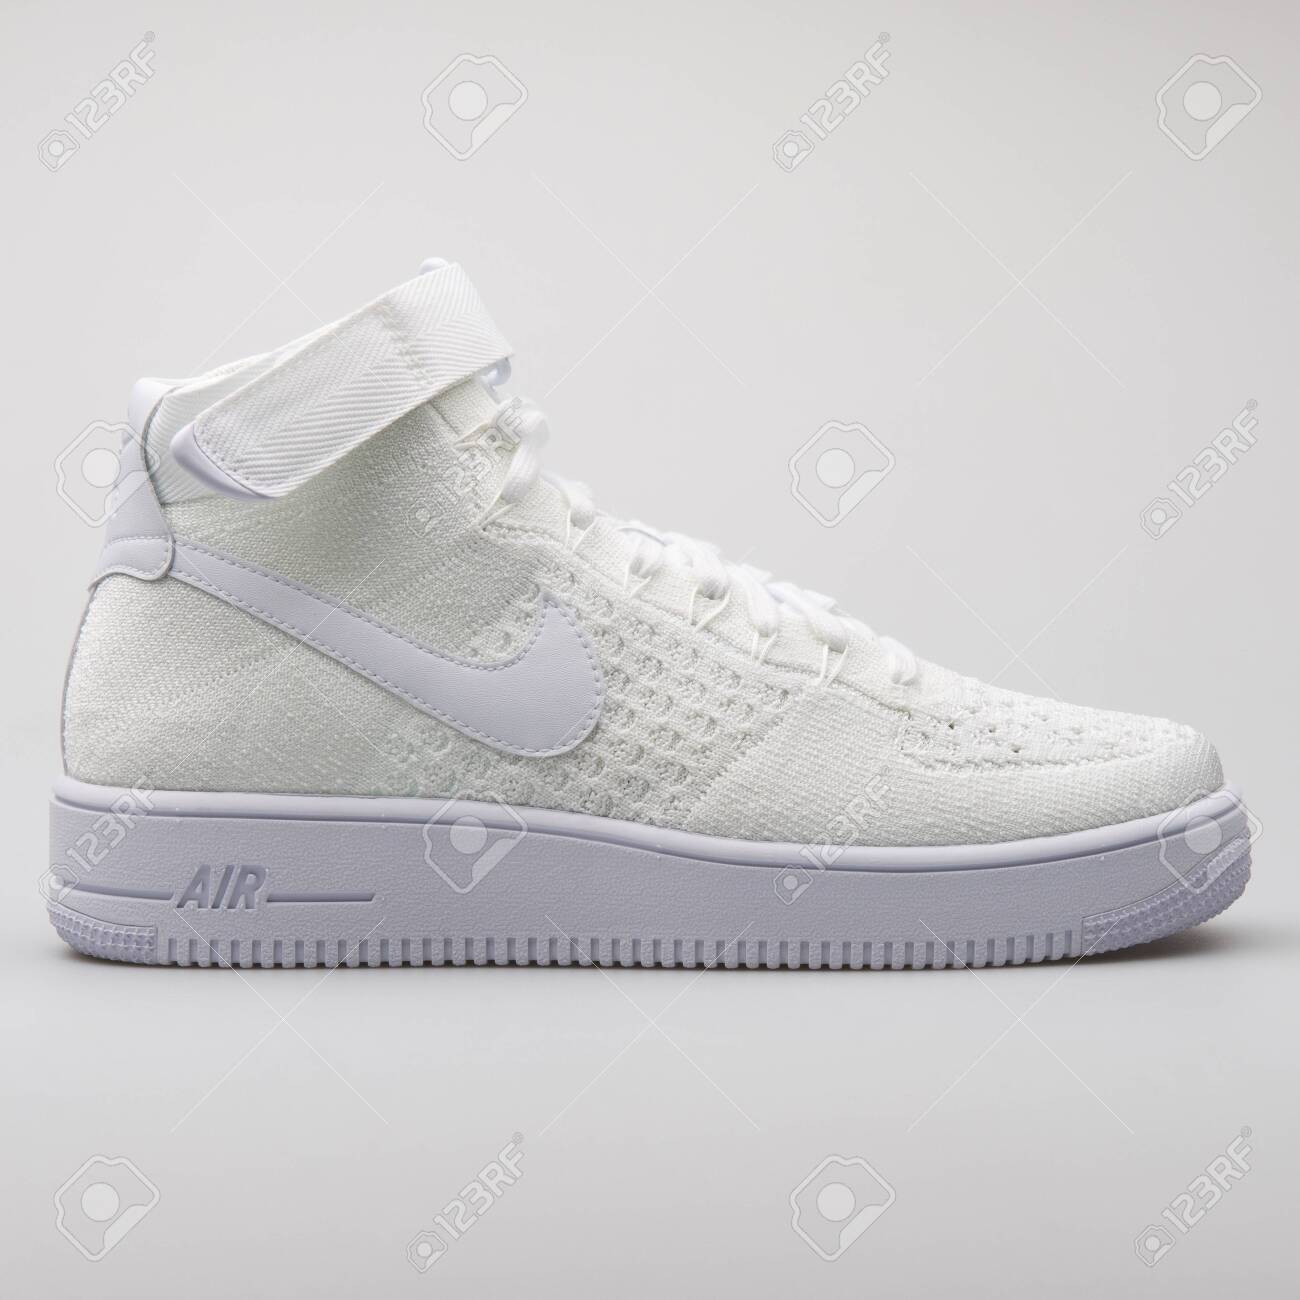 b6d37f29 Stock Photo - VIENNA, AUSTRIA - AUGUST 7, 2017: Nike Air Force 1 Ultra  Flyknit Mid white sneaker on white background.